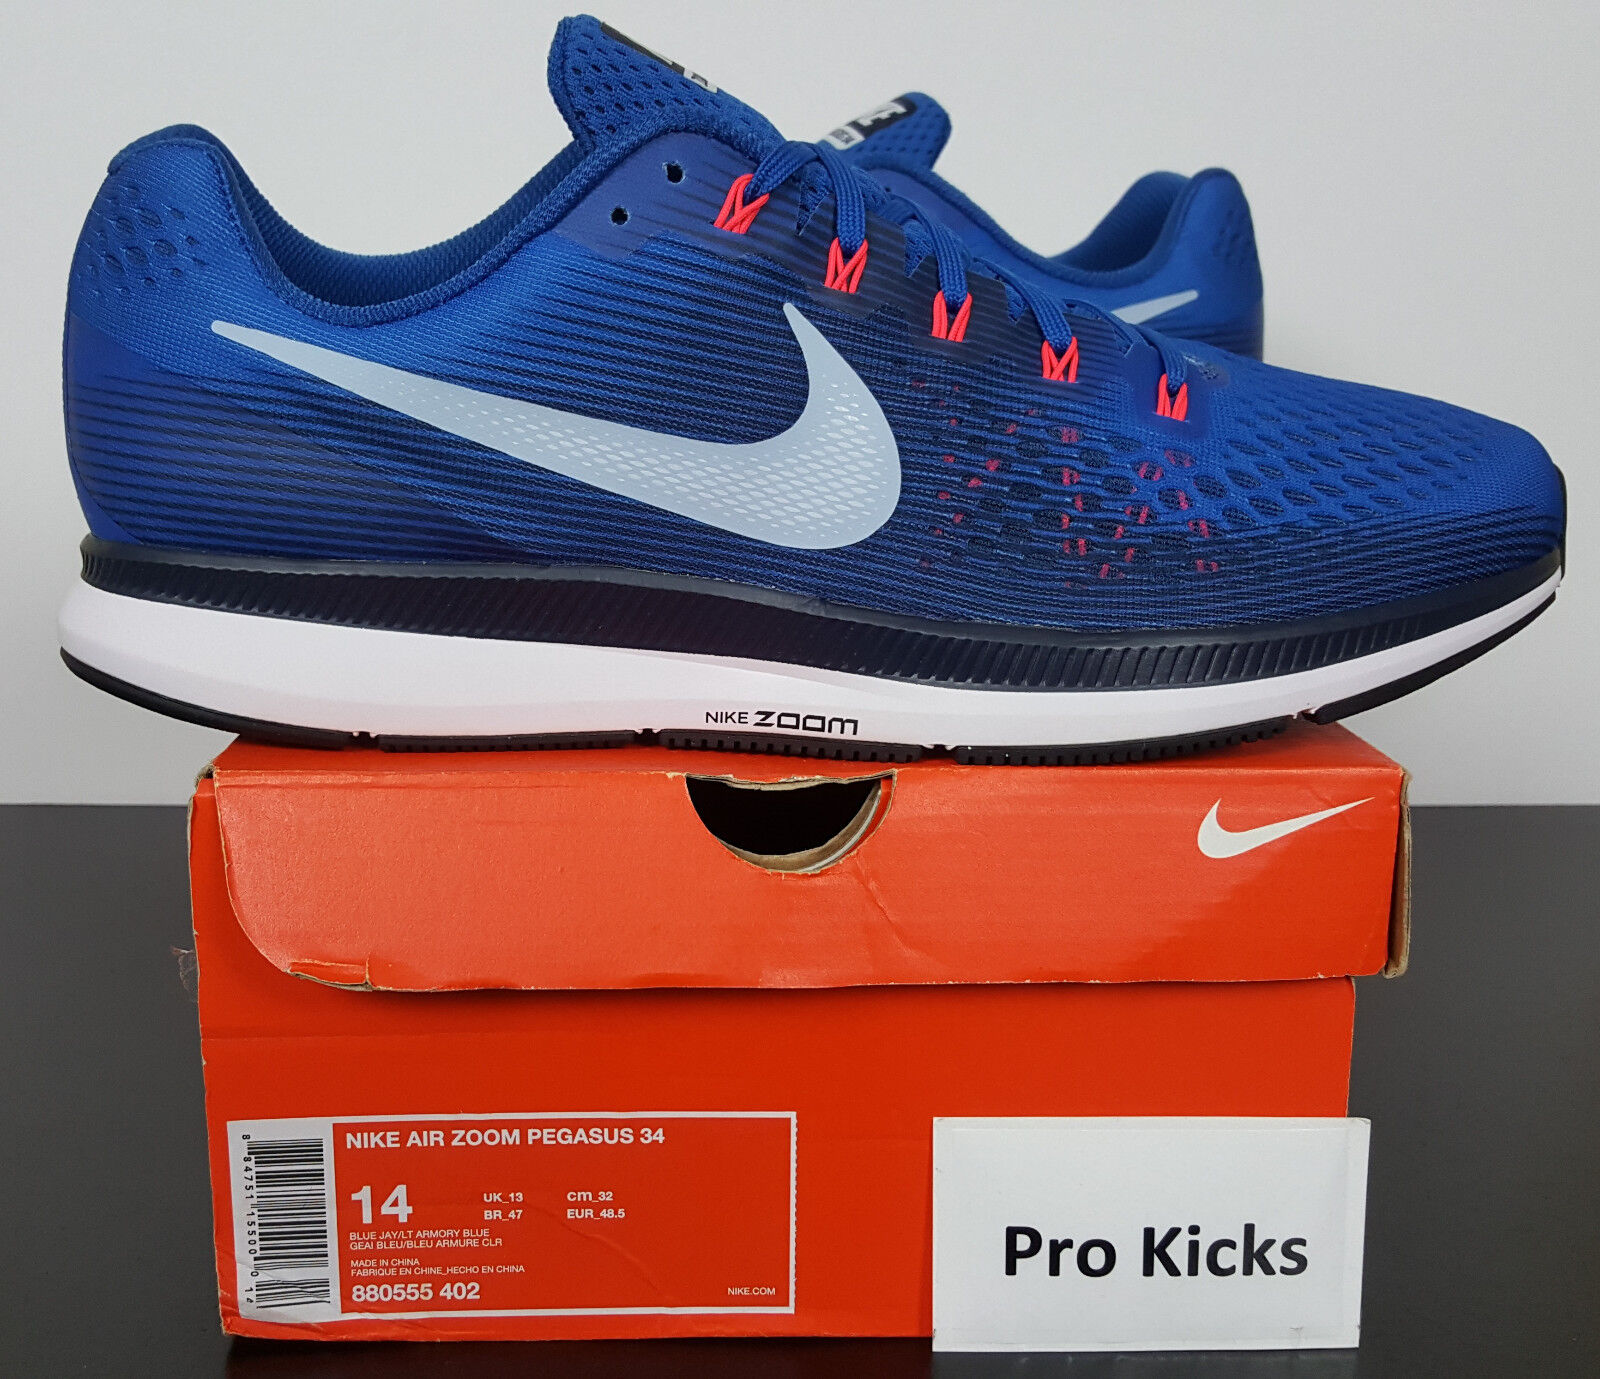 7c98e0d7aa81 Nike Air Zoom Pegasus 34 Mens Running Shoes 14 Blue Jay Armory Blue ...